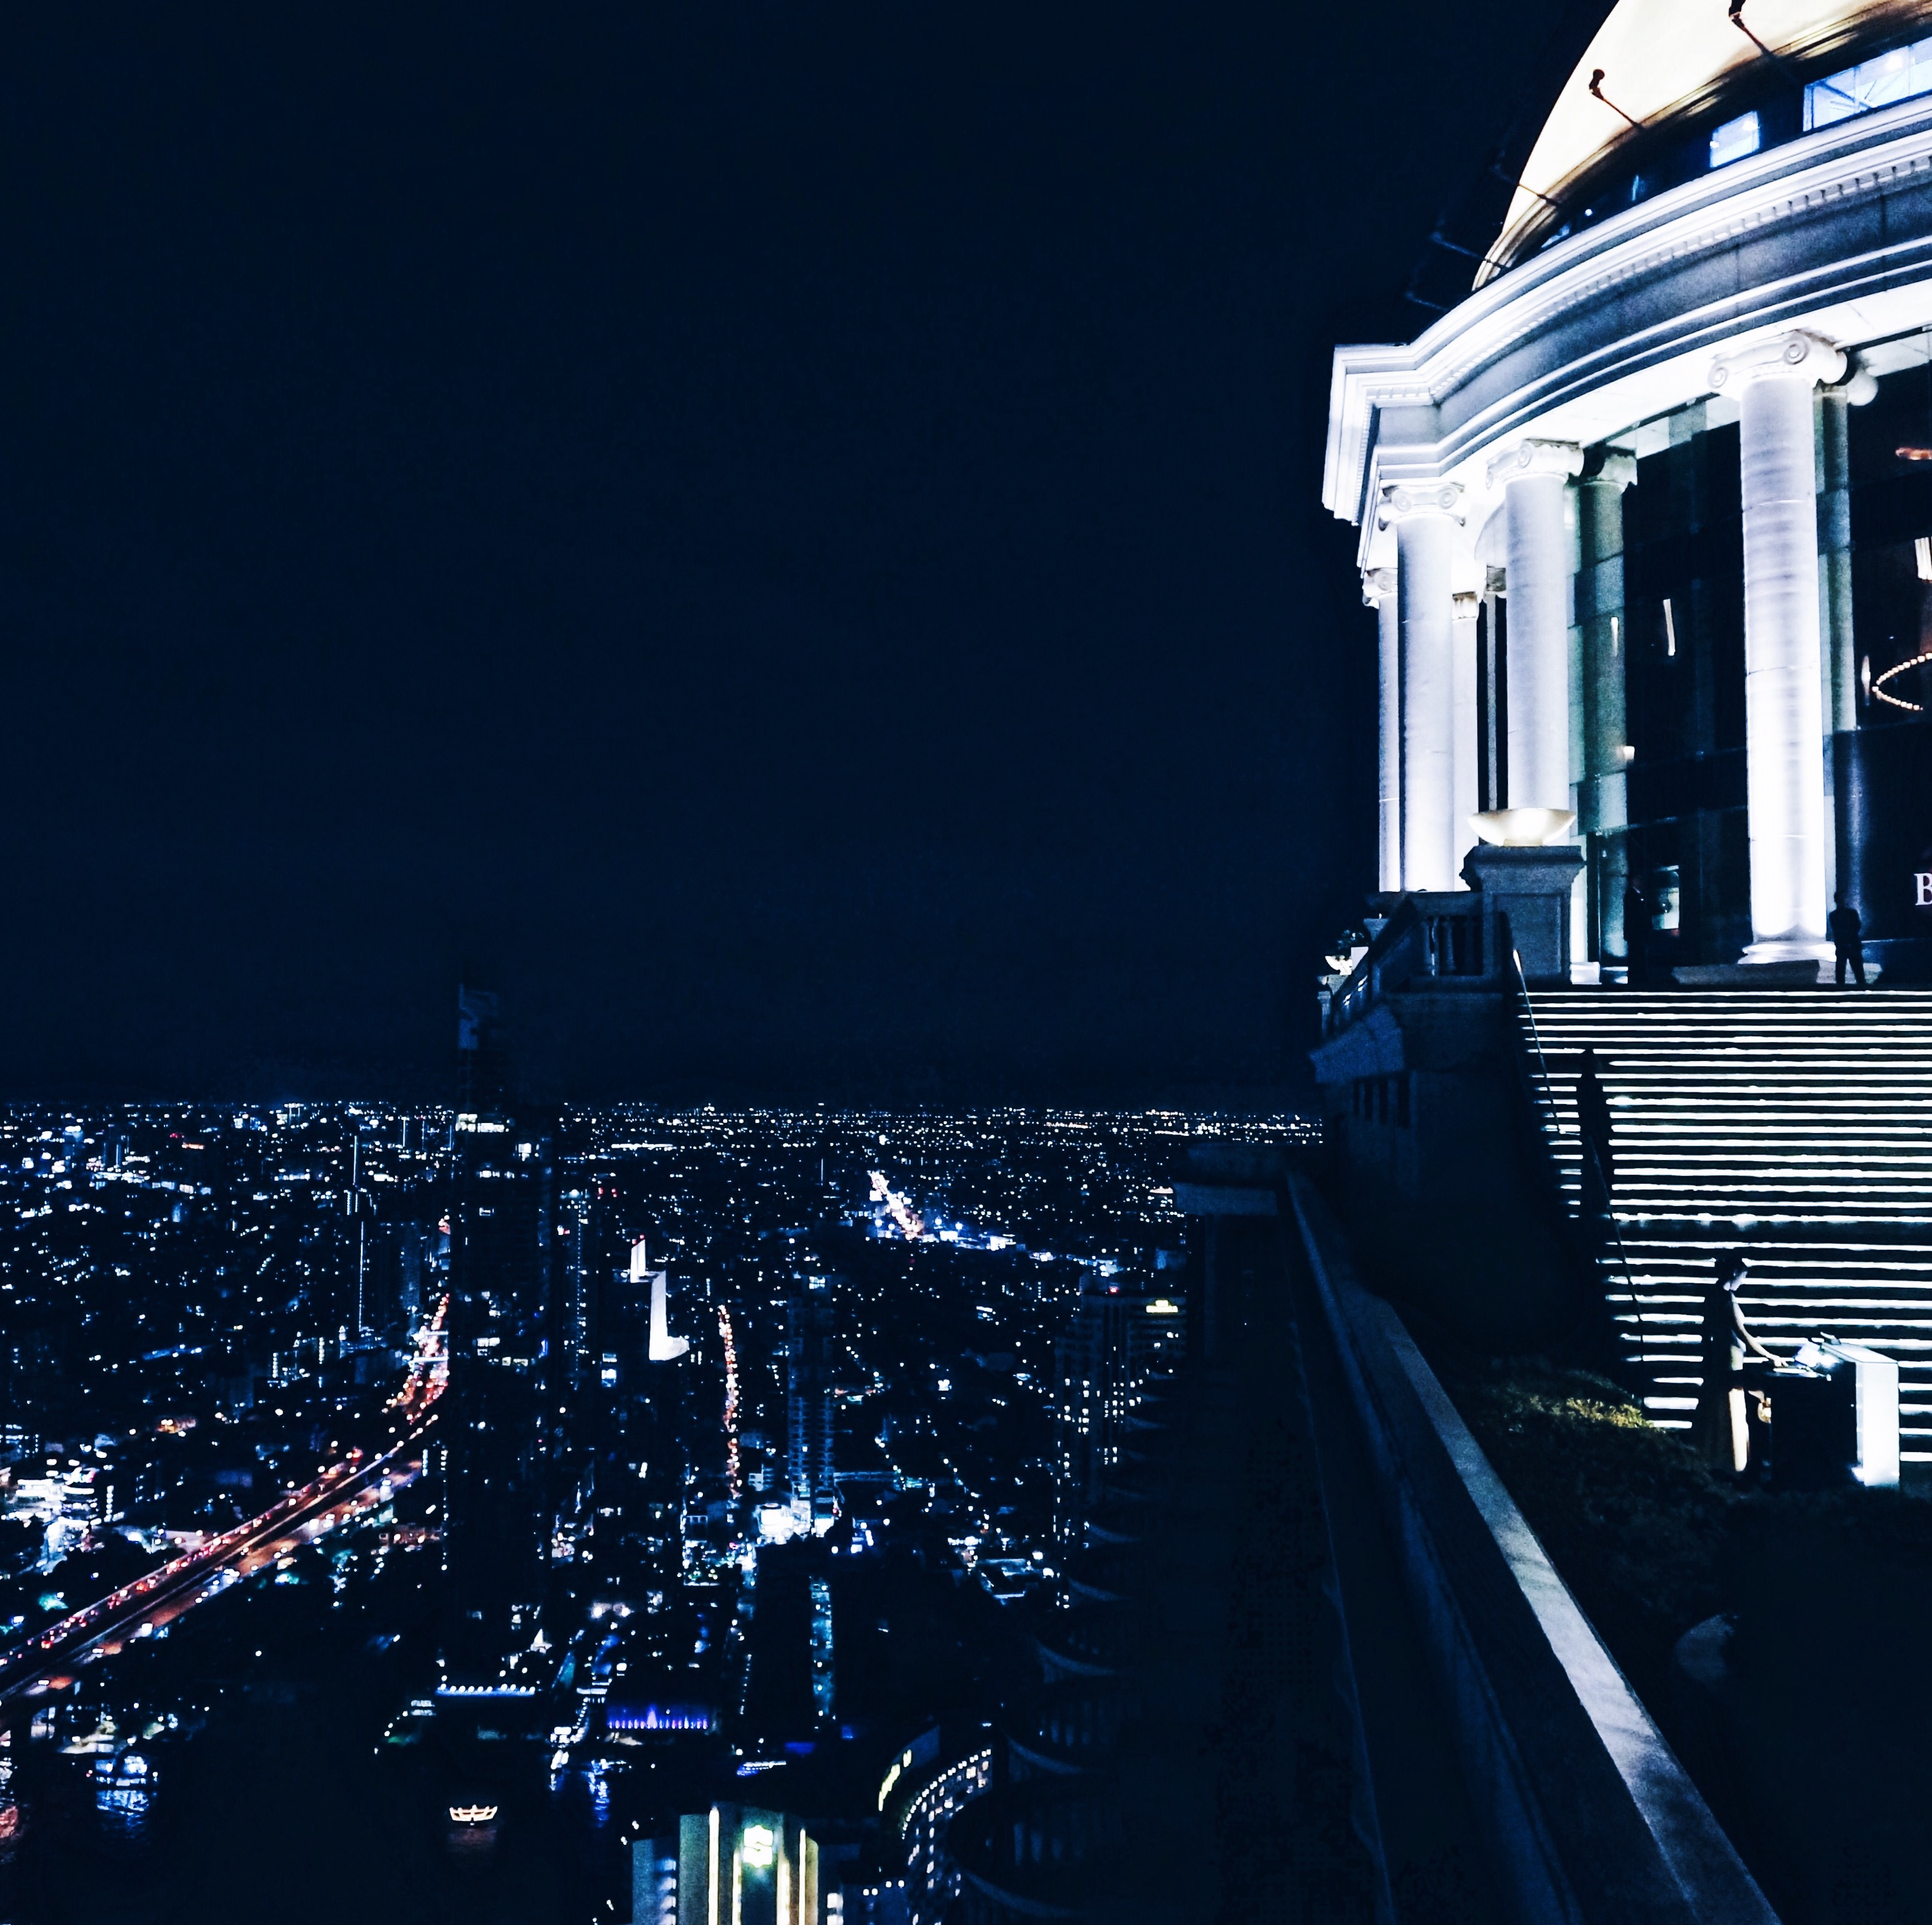 Bangkok Lebua State Tower | Sky Bar, Rooftopbar, Bars in Thailand, Bars in Bangkok, Rooftop